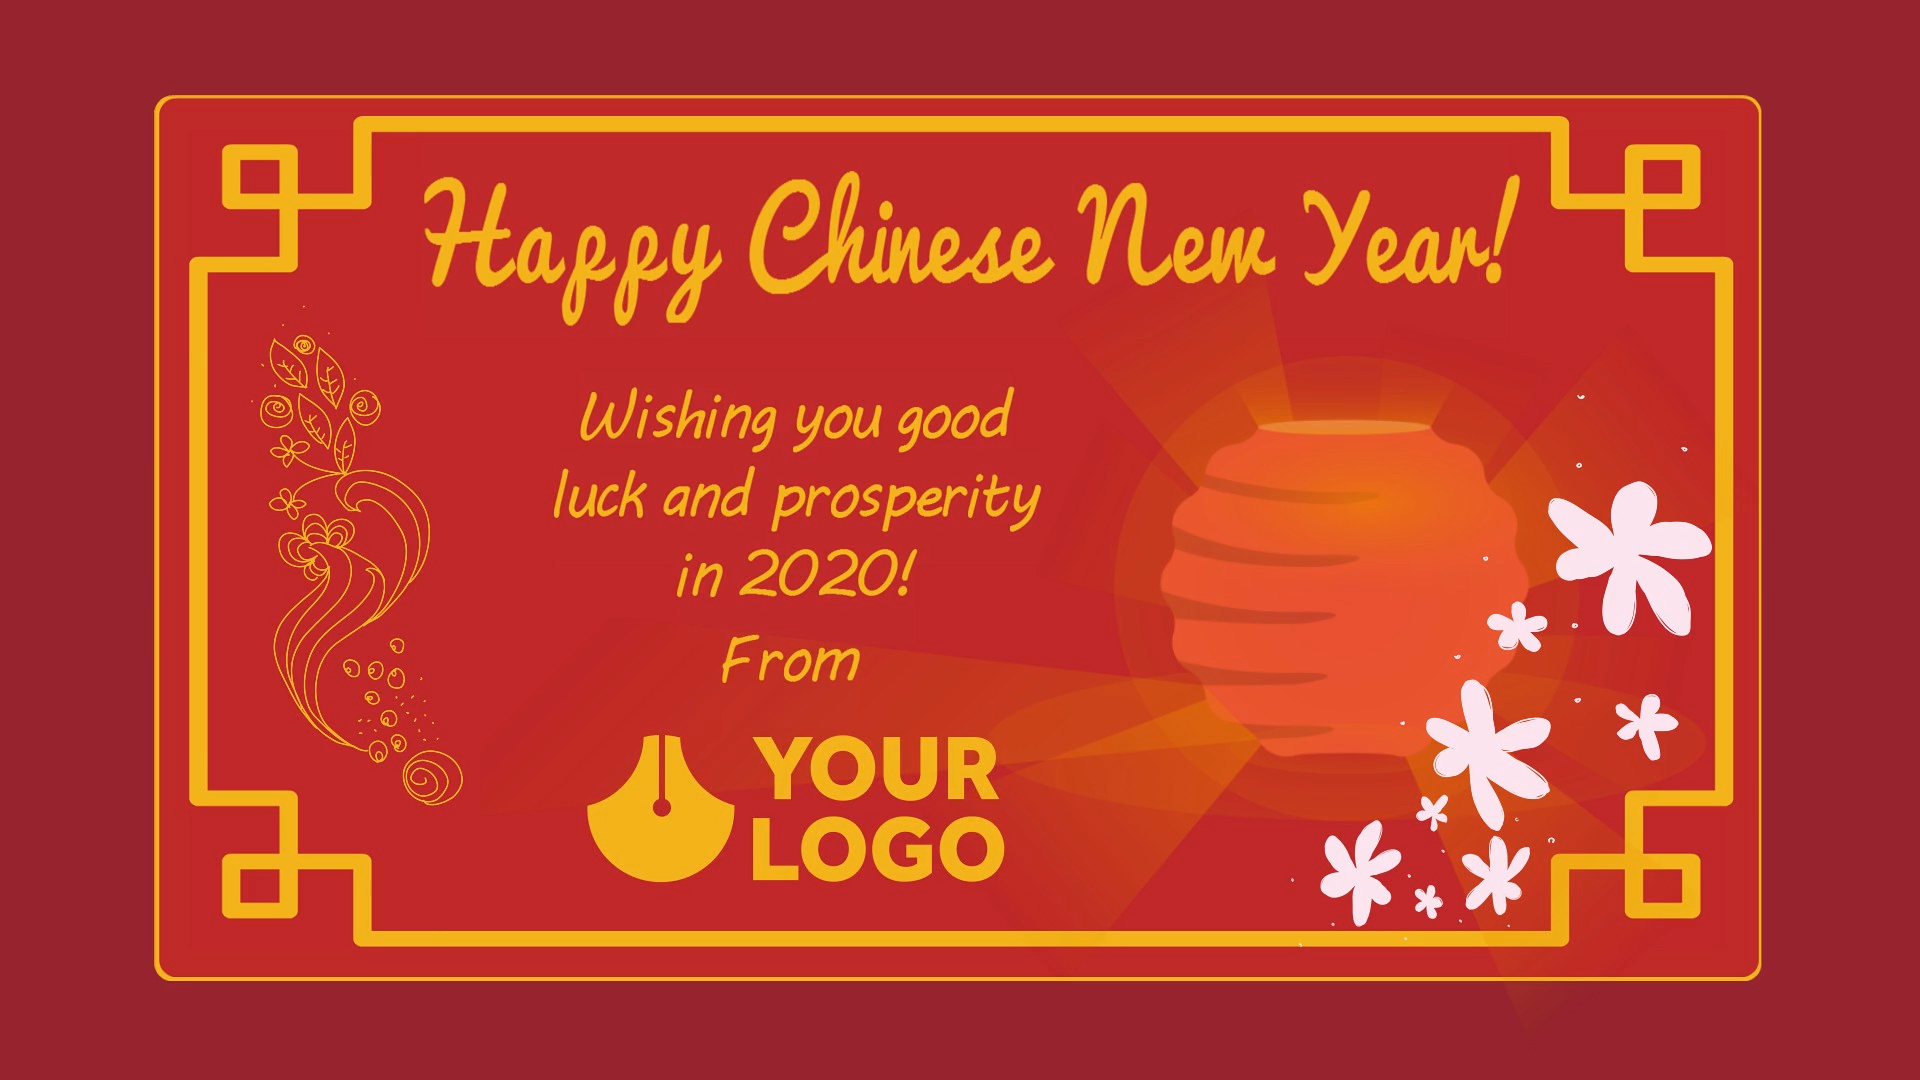 Customizable Chinese New Year video templates